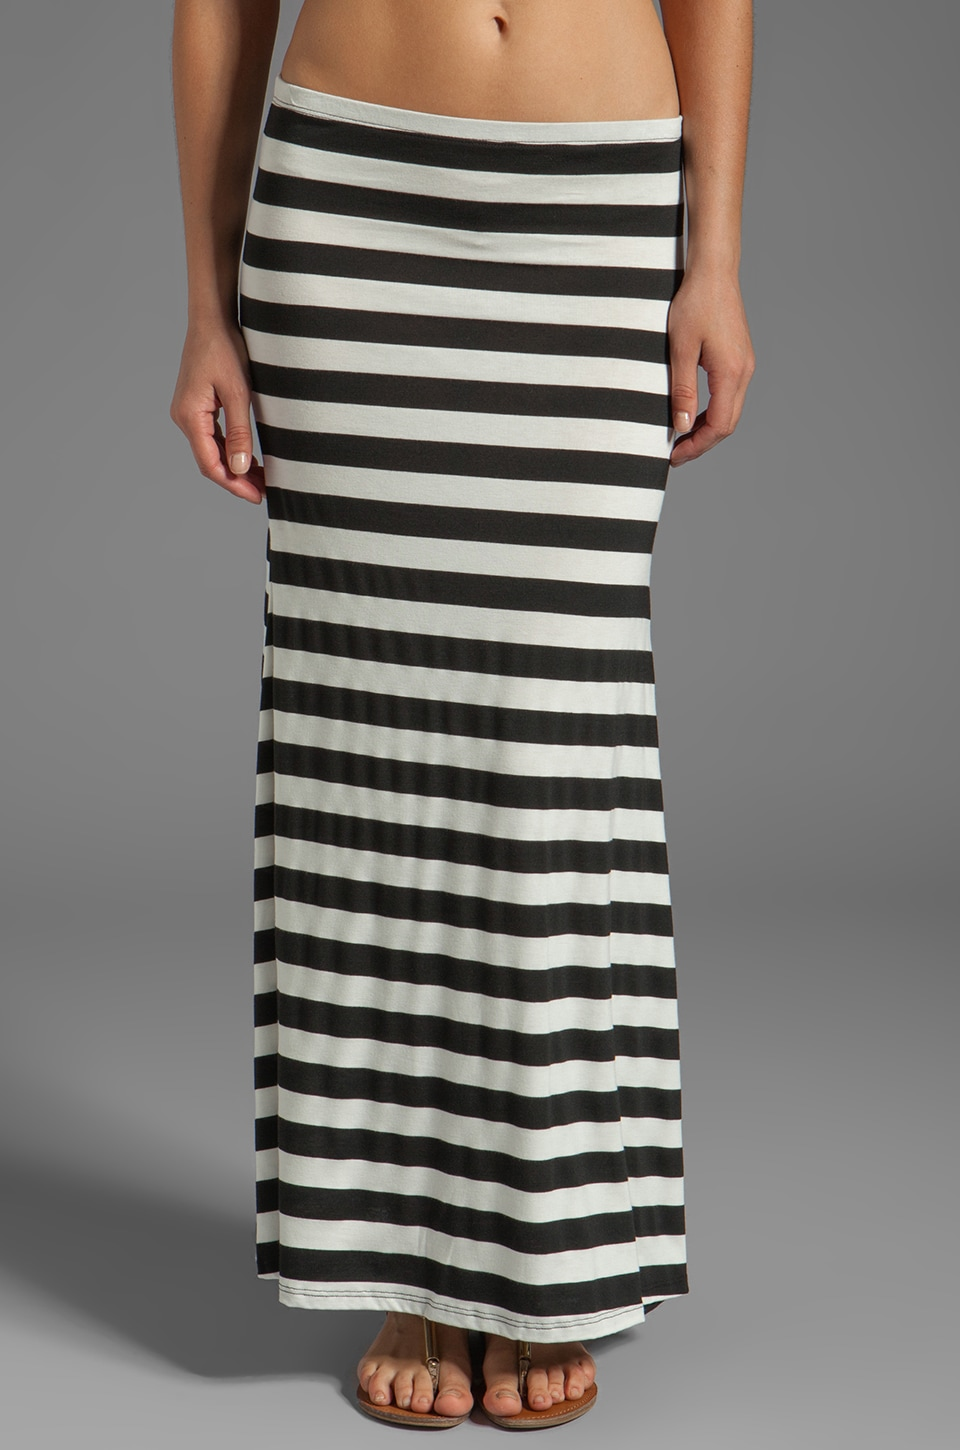 Eight Sixty Stripe Maxi Skirt in Black/White